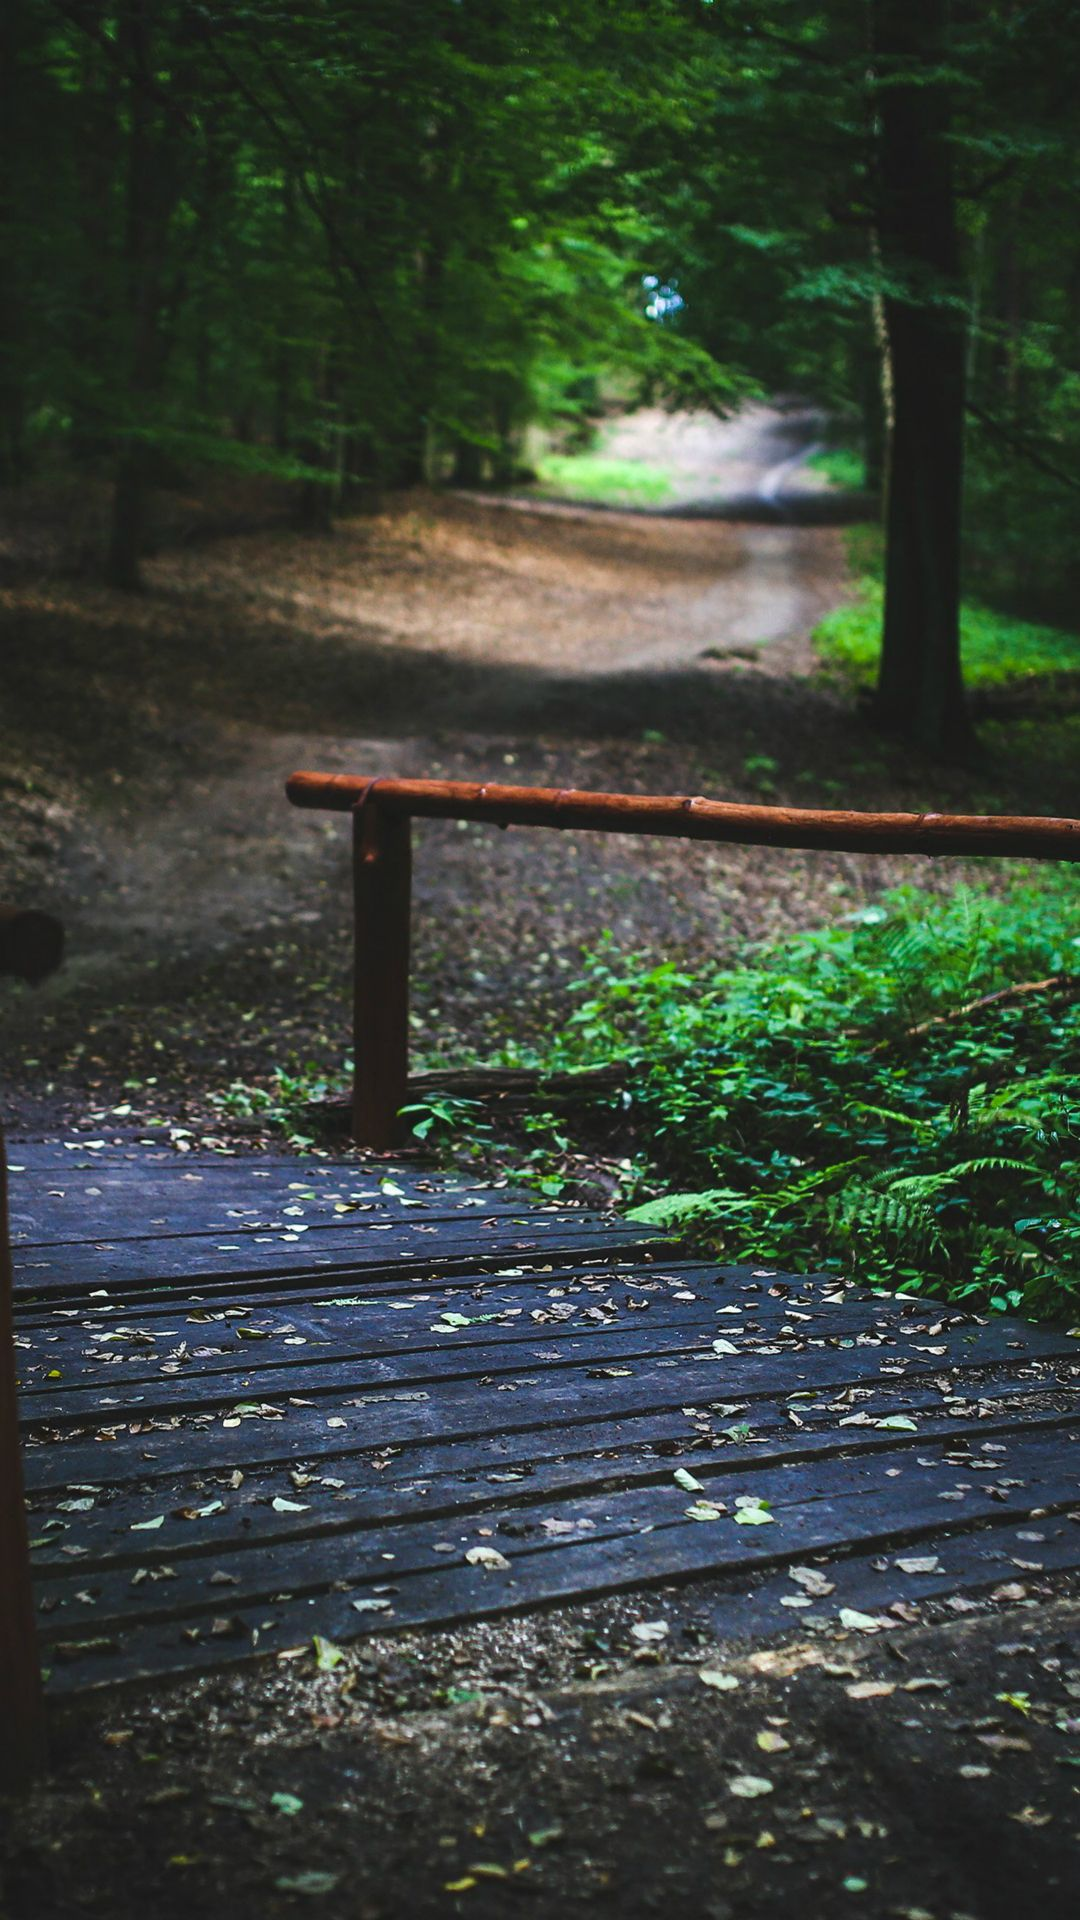 Vintage wood wallpaper vintage wood wallpaper for android backgrounds - Wood Nature Forest Road Mountain Dark Summer Iphone 6 Plus Wallpaper